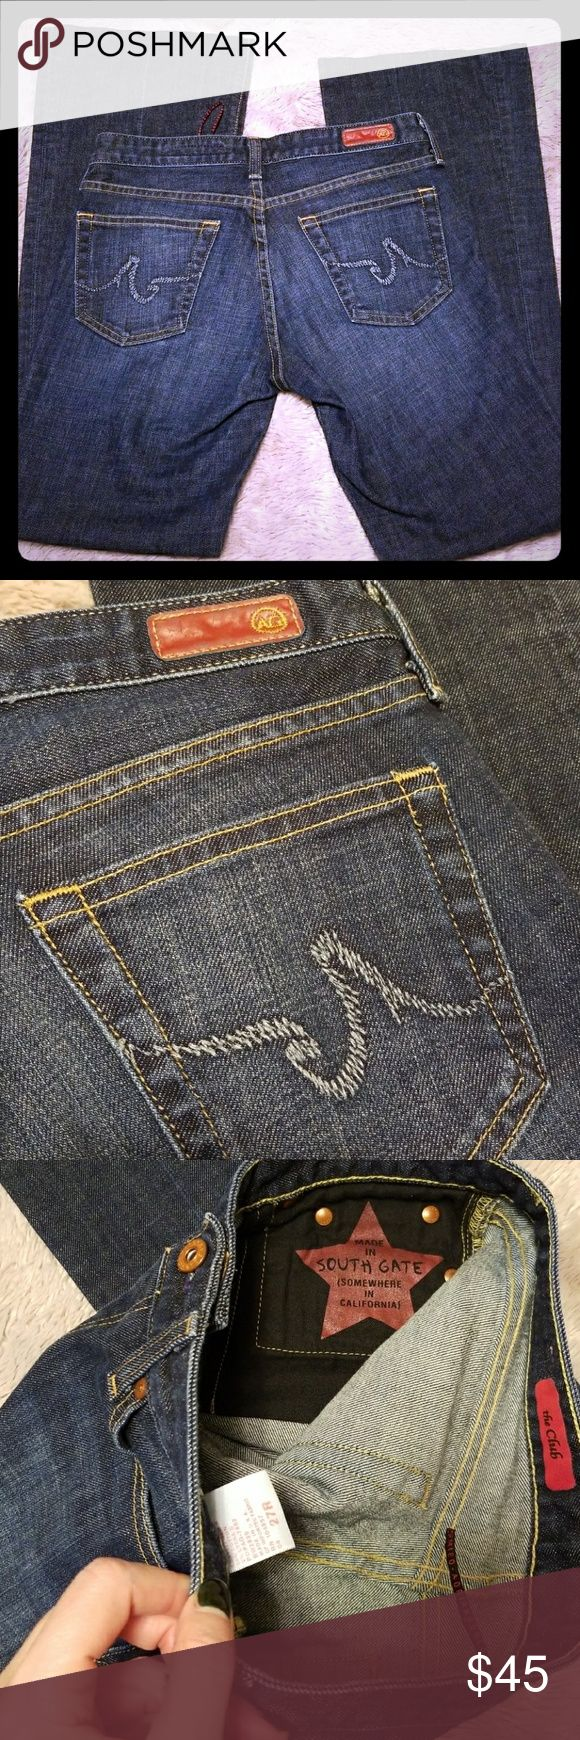 """AG Adriano Goldschmied the Club size 27 Excellent used condition! When laid flat:  Waist: 14.5"""" Rise: 7.5"""" Inseam: 30.25"""" Make an offer,  feel free to ask any questions prior to bidding! Anthropologie Niemen Marcus Ag Adriano Goldschmied Jeans"""